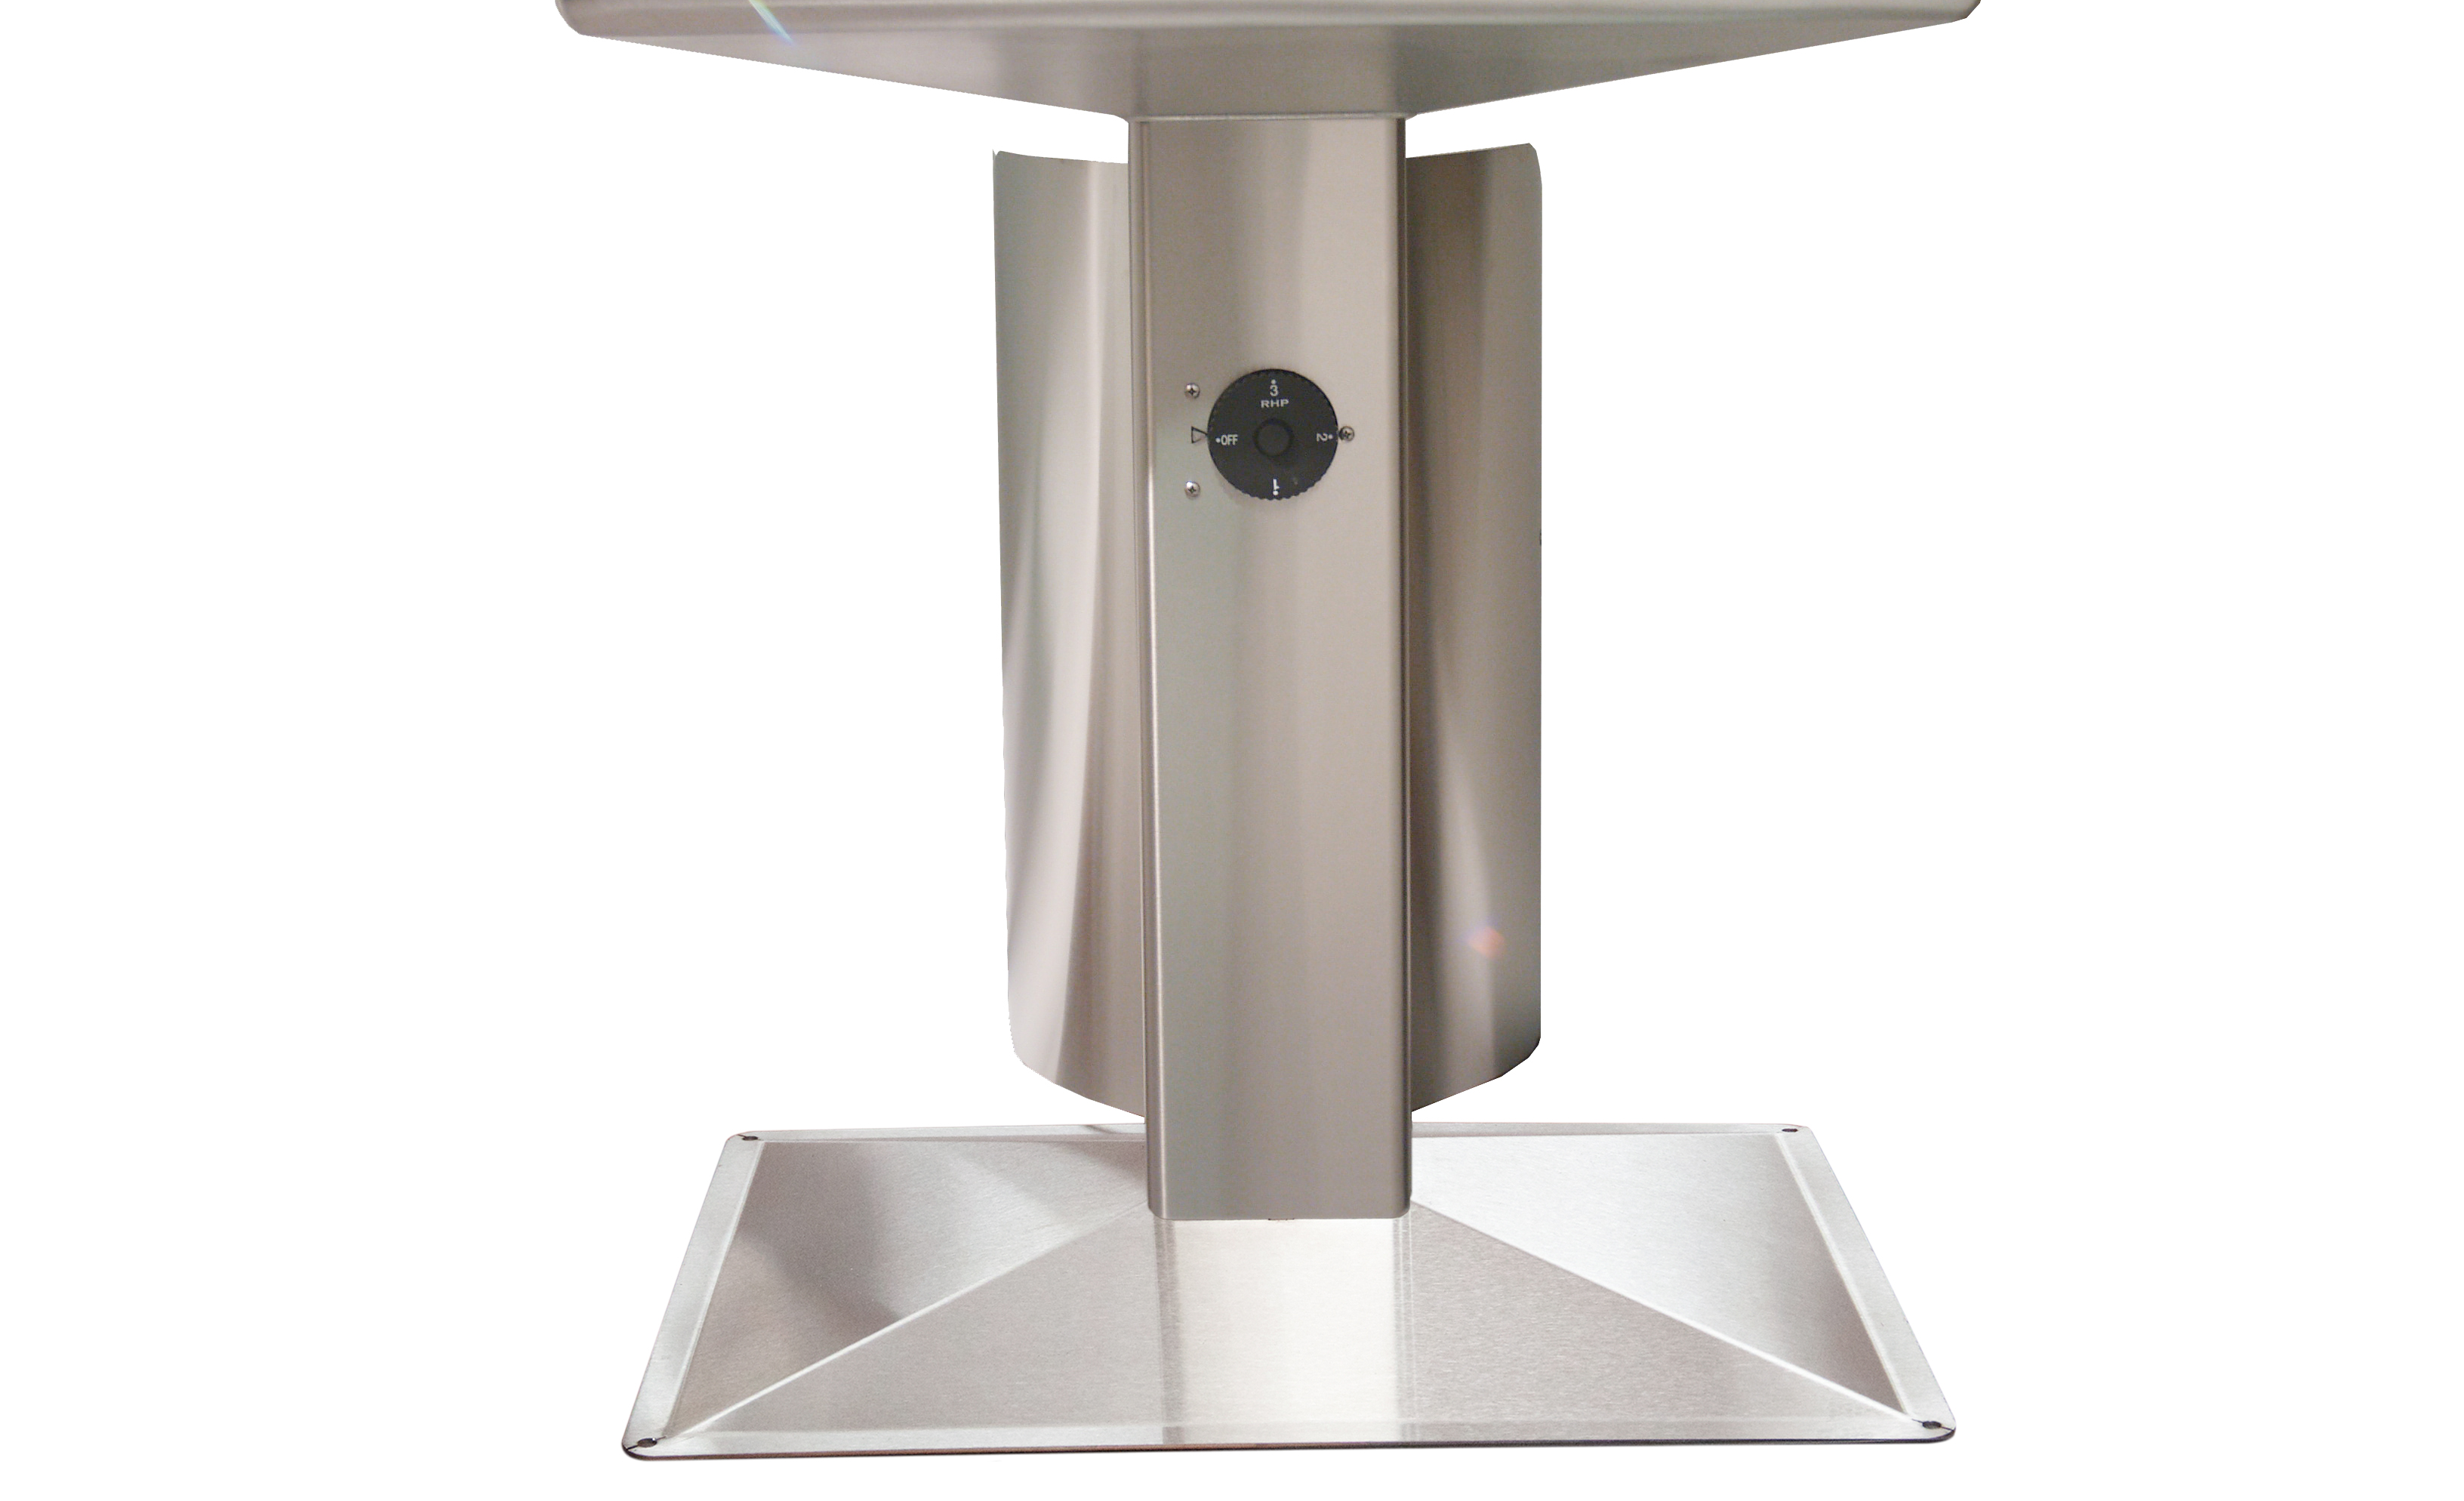 aog-tank-shield-for-patio-post-grill.jpg